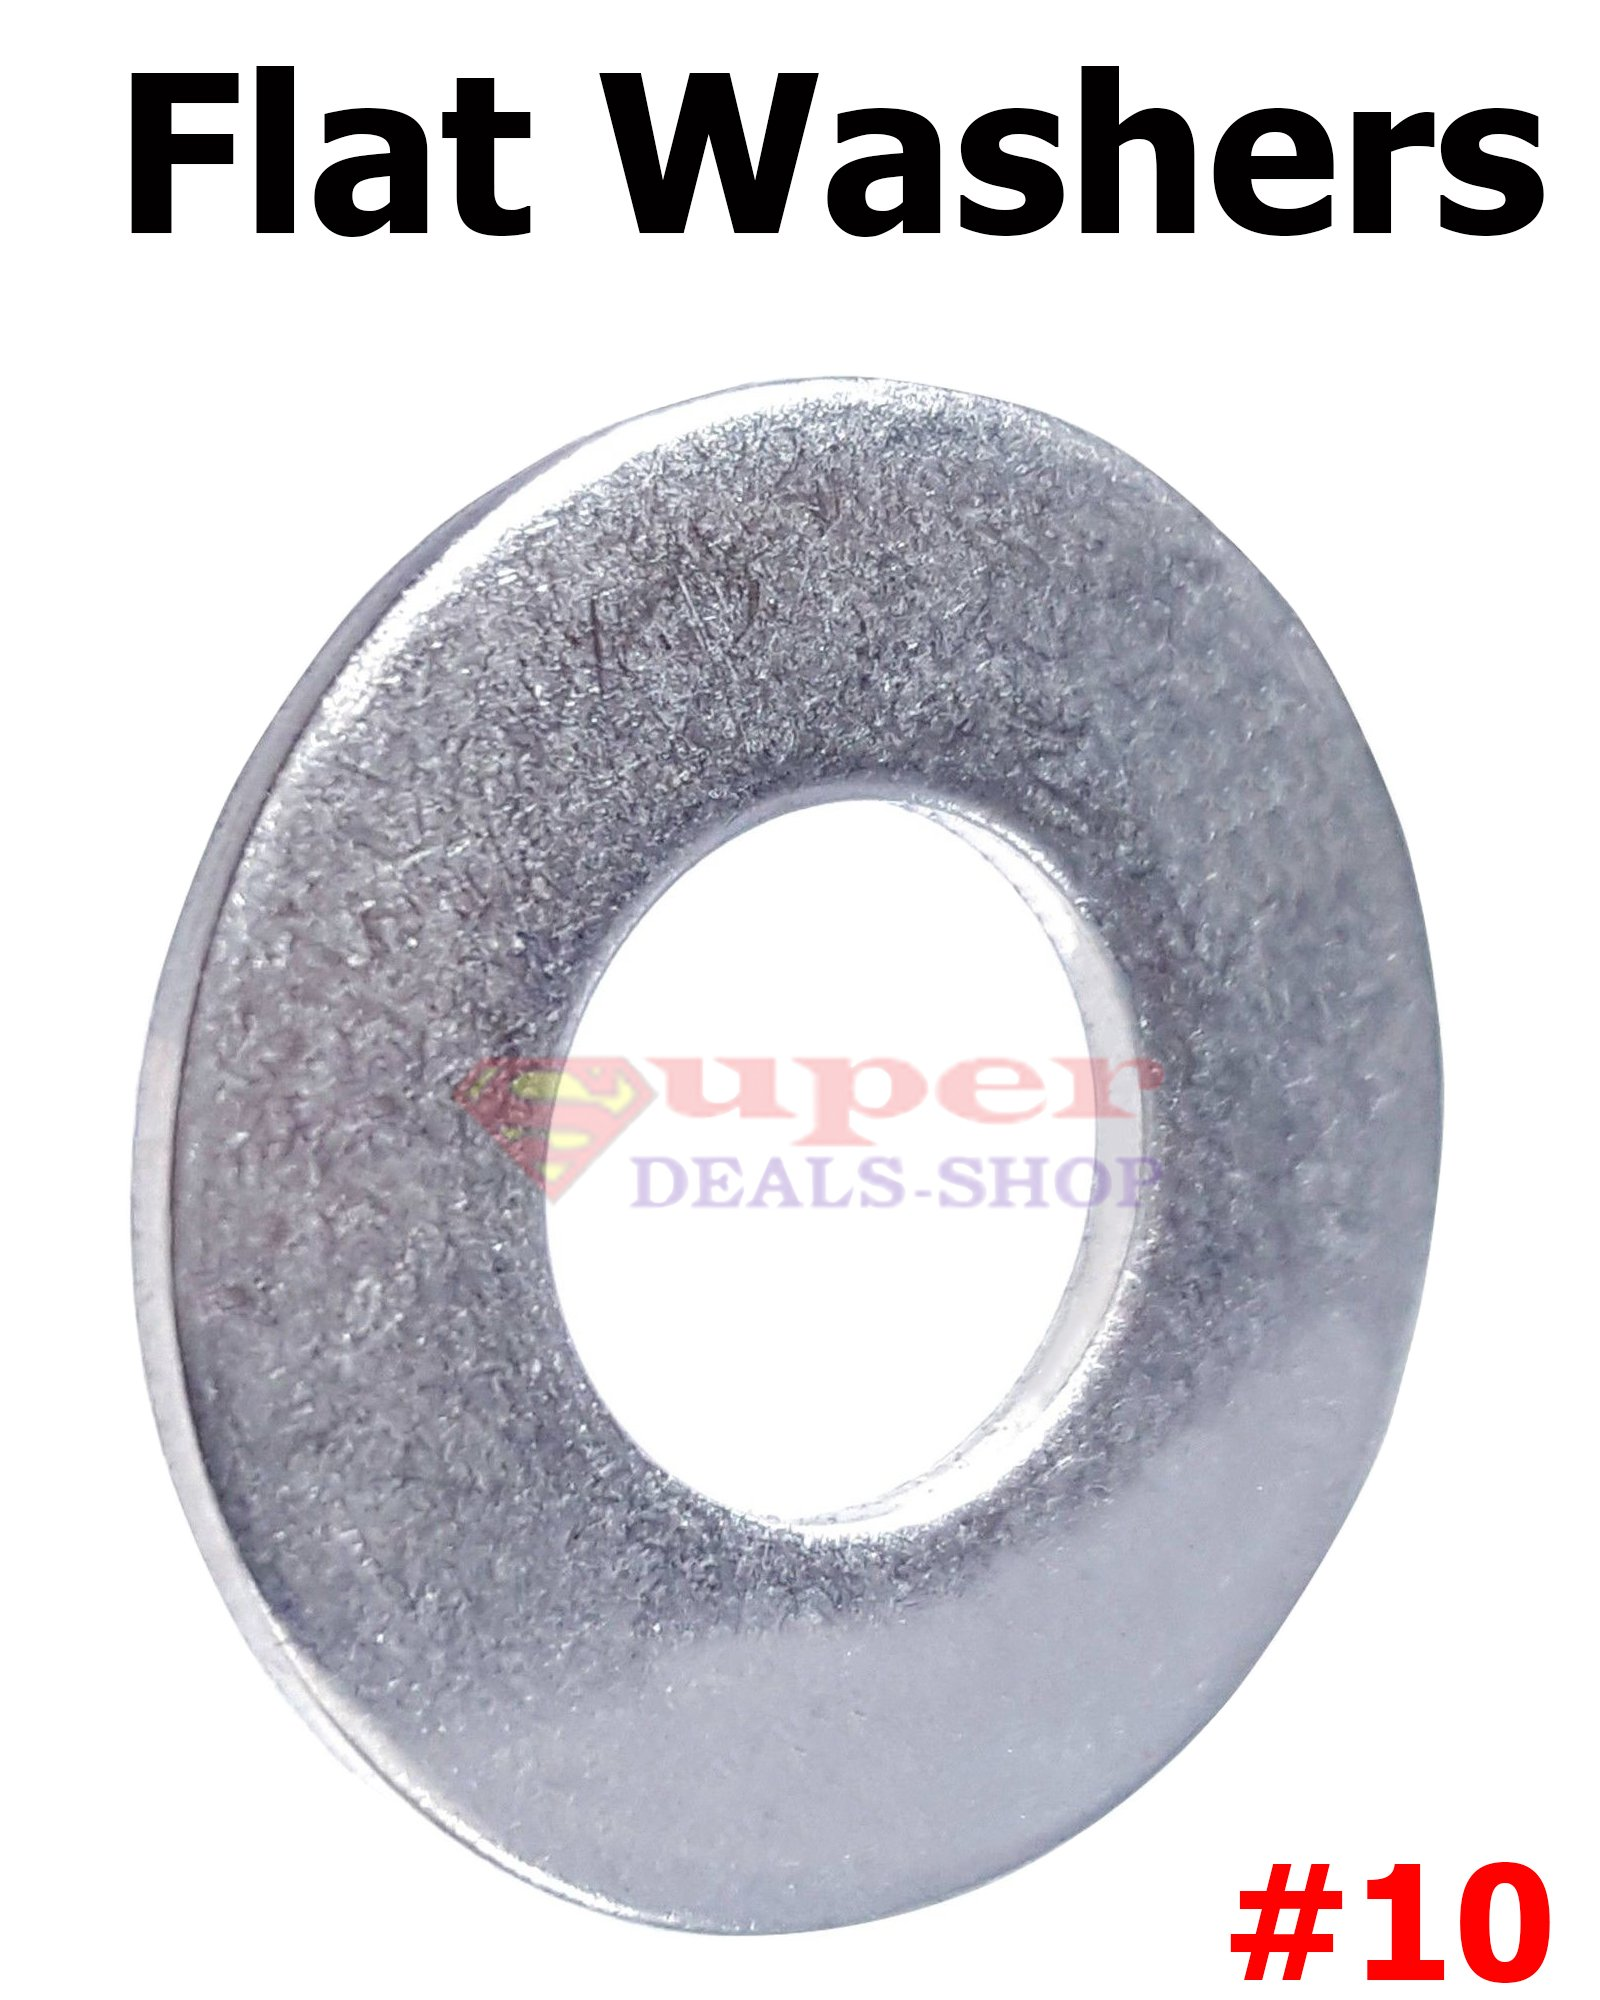 500 Pcs #10 Stainless Steel Flat Washers SS Flat Washer Flats Super-Deals-Shop